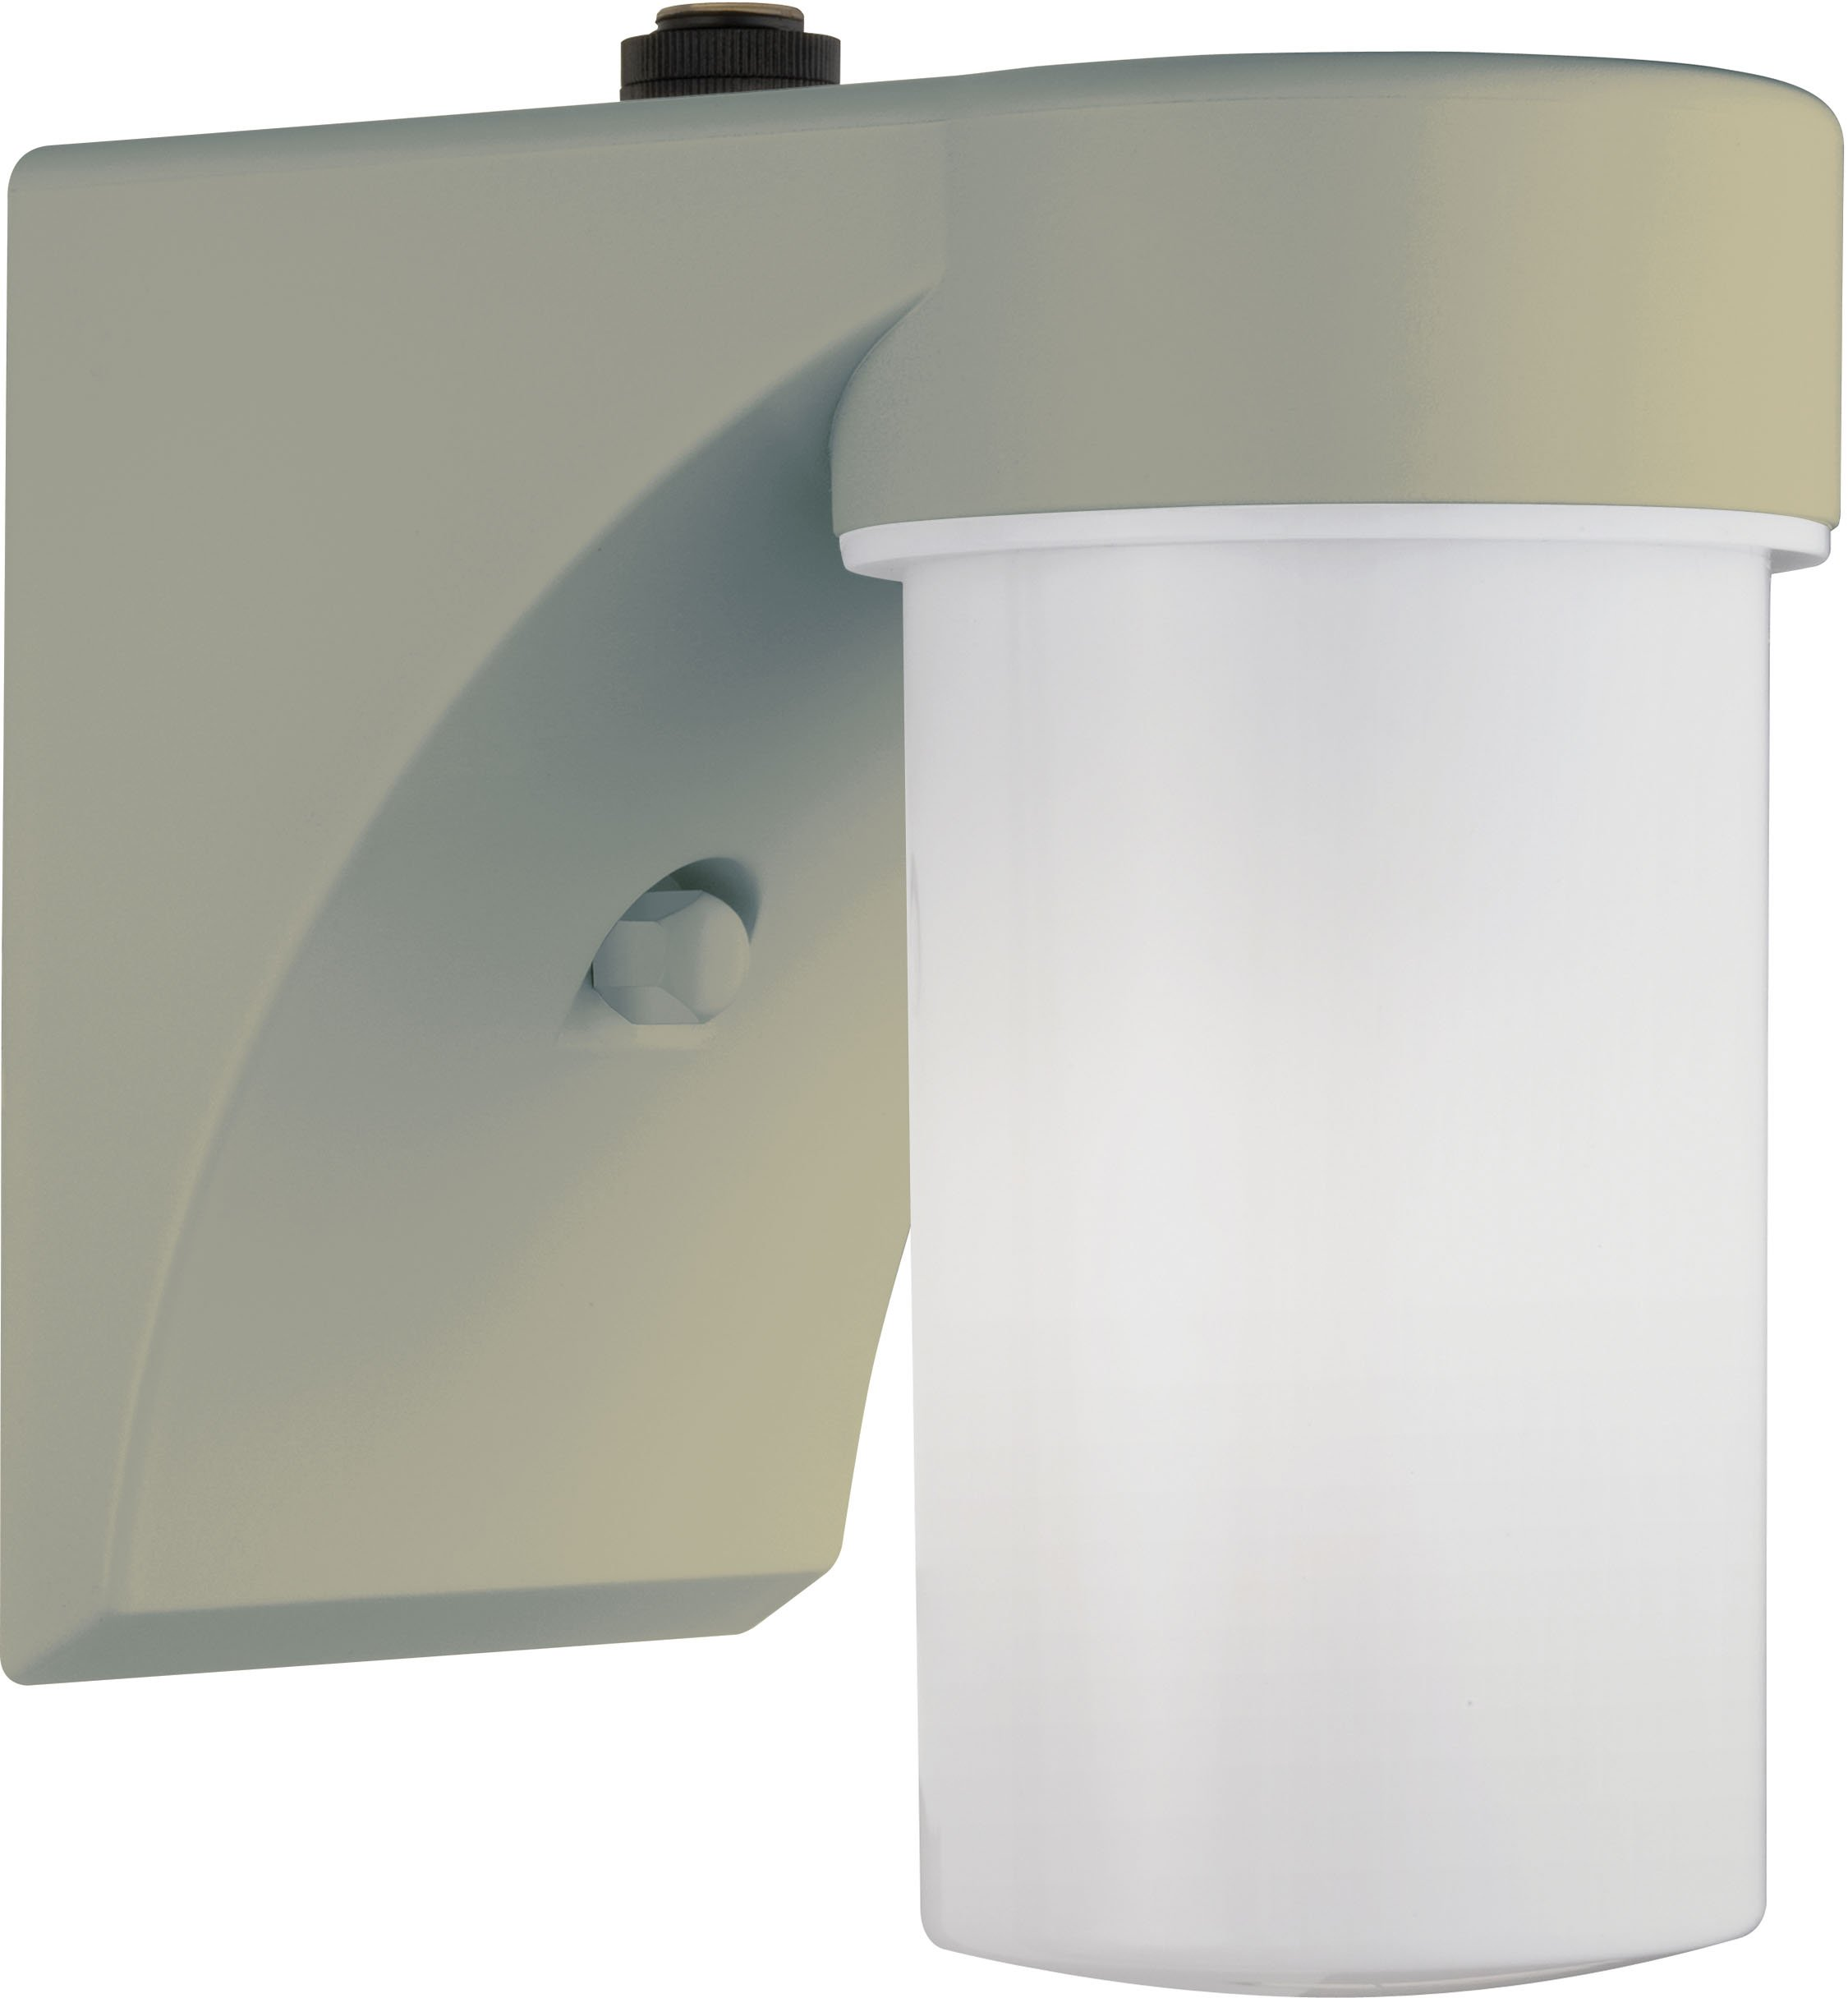 Lithonia Lighting OSC 13F 120 P LP WH M6 Outdoor Cylinder Wall Light with Dusk to Dawn Photocell, Beige